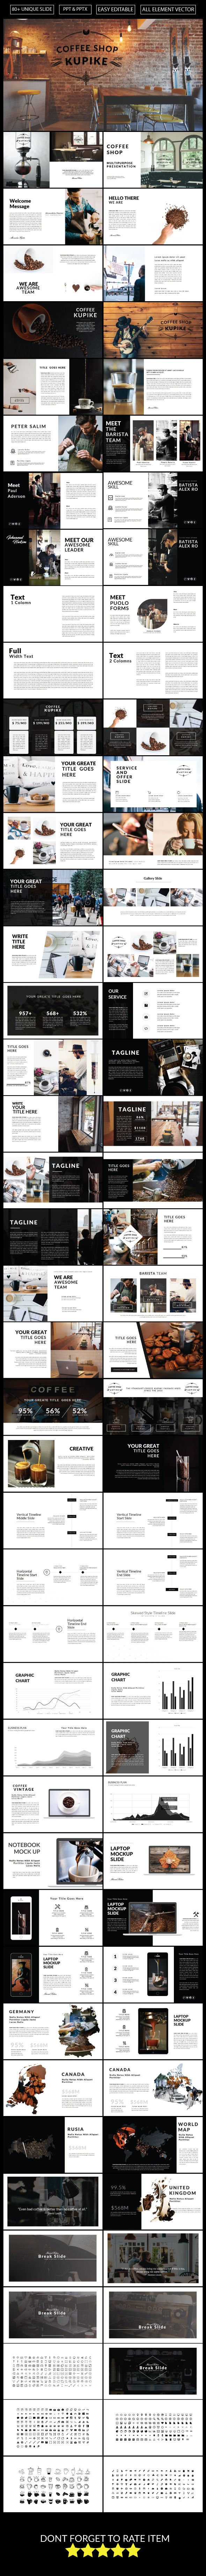 Coffee Kupike Multipurpose Powerpoint Template  Powerpoint